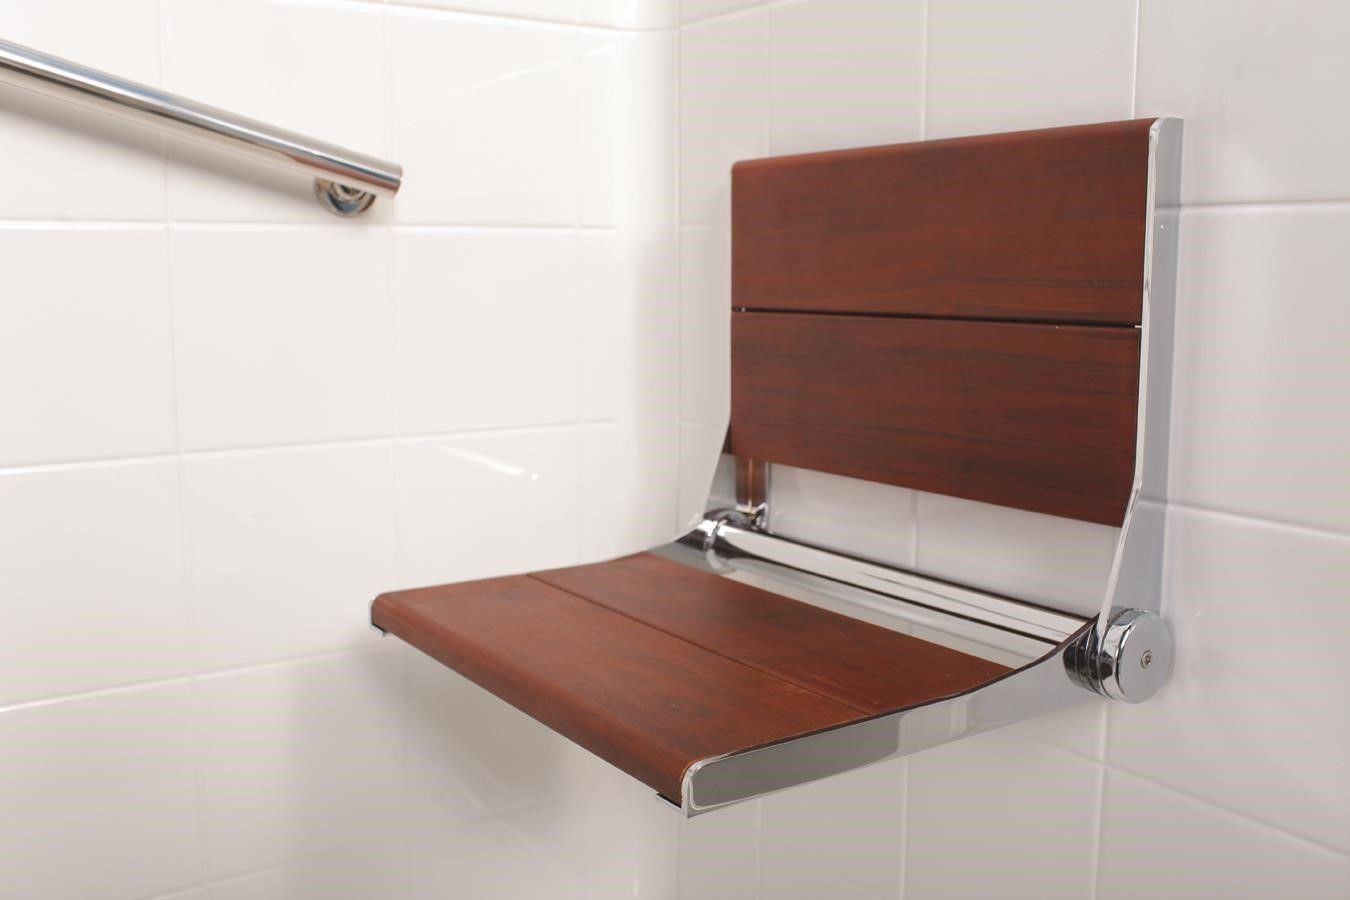 Walk In Showers Premier Care In Bathing With Images Walk In